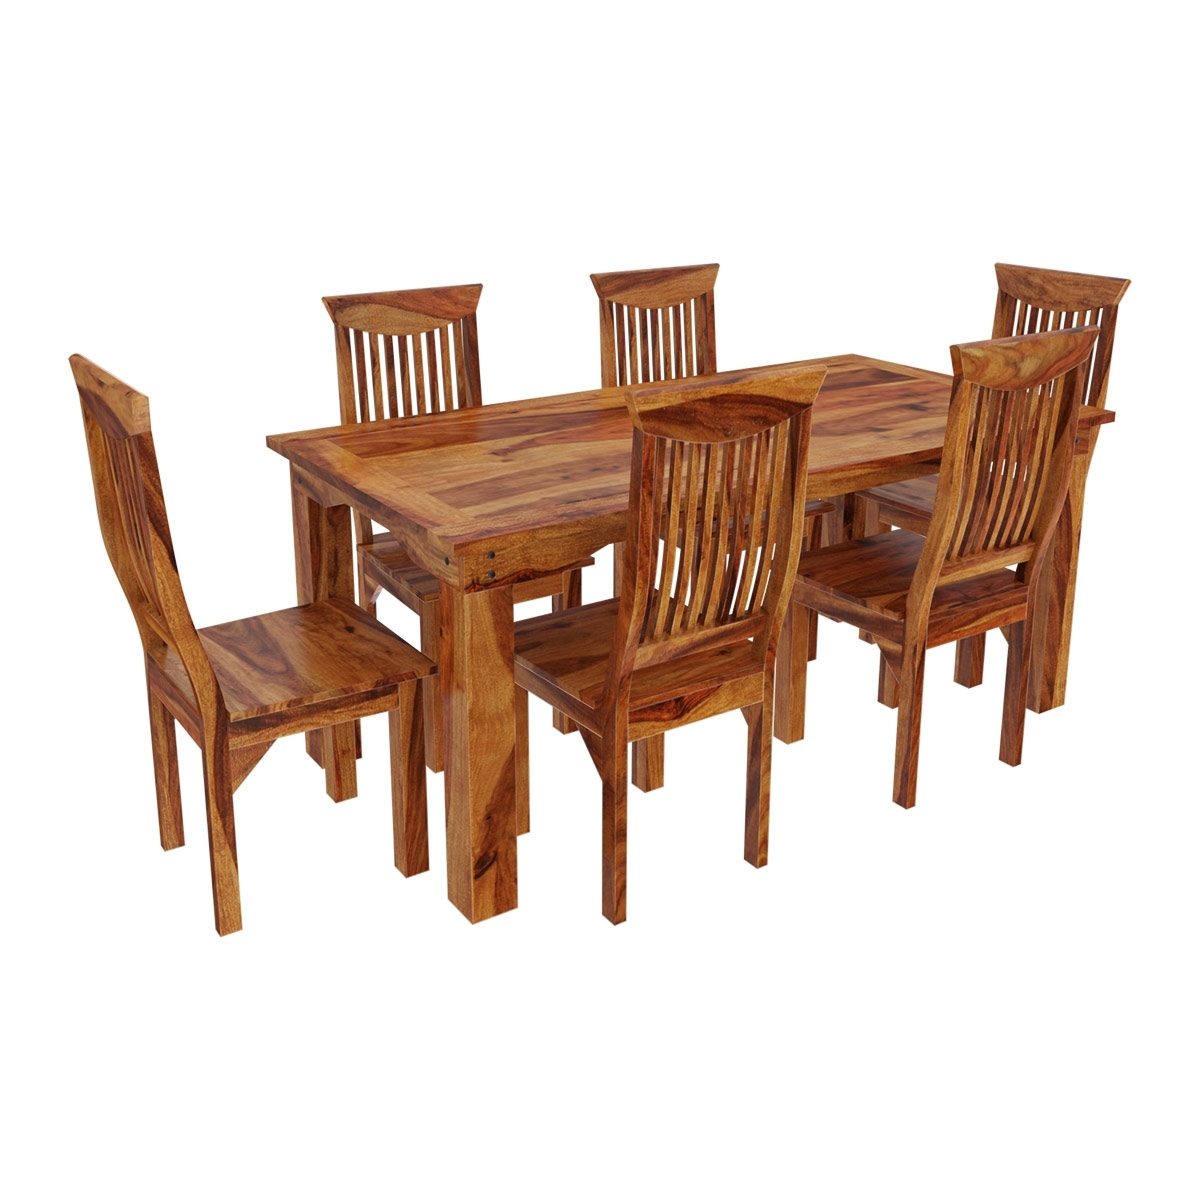 Most Recently Released Solid Wood Dining Tables Pertaining To Idaho Modern Rustic Solid Wood Dining Table & Chair Set (View 11 of 25)